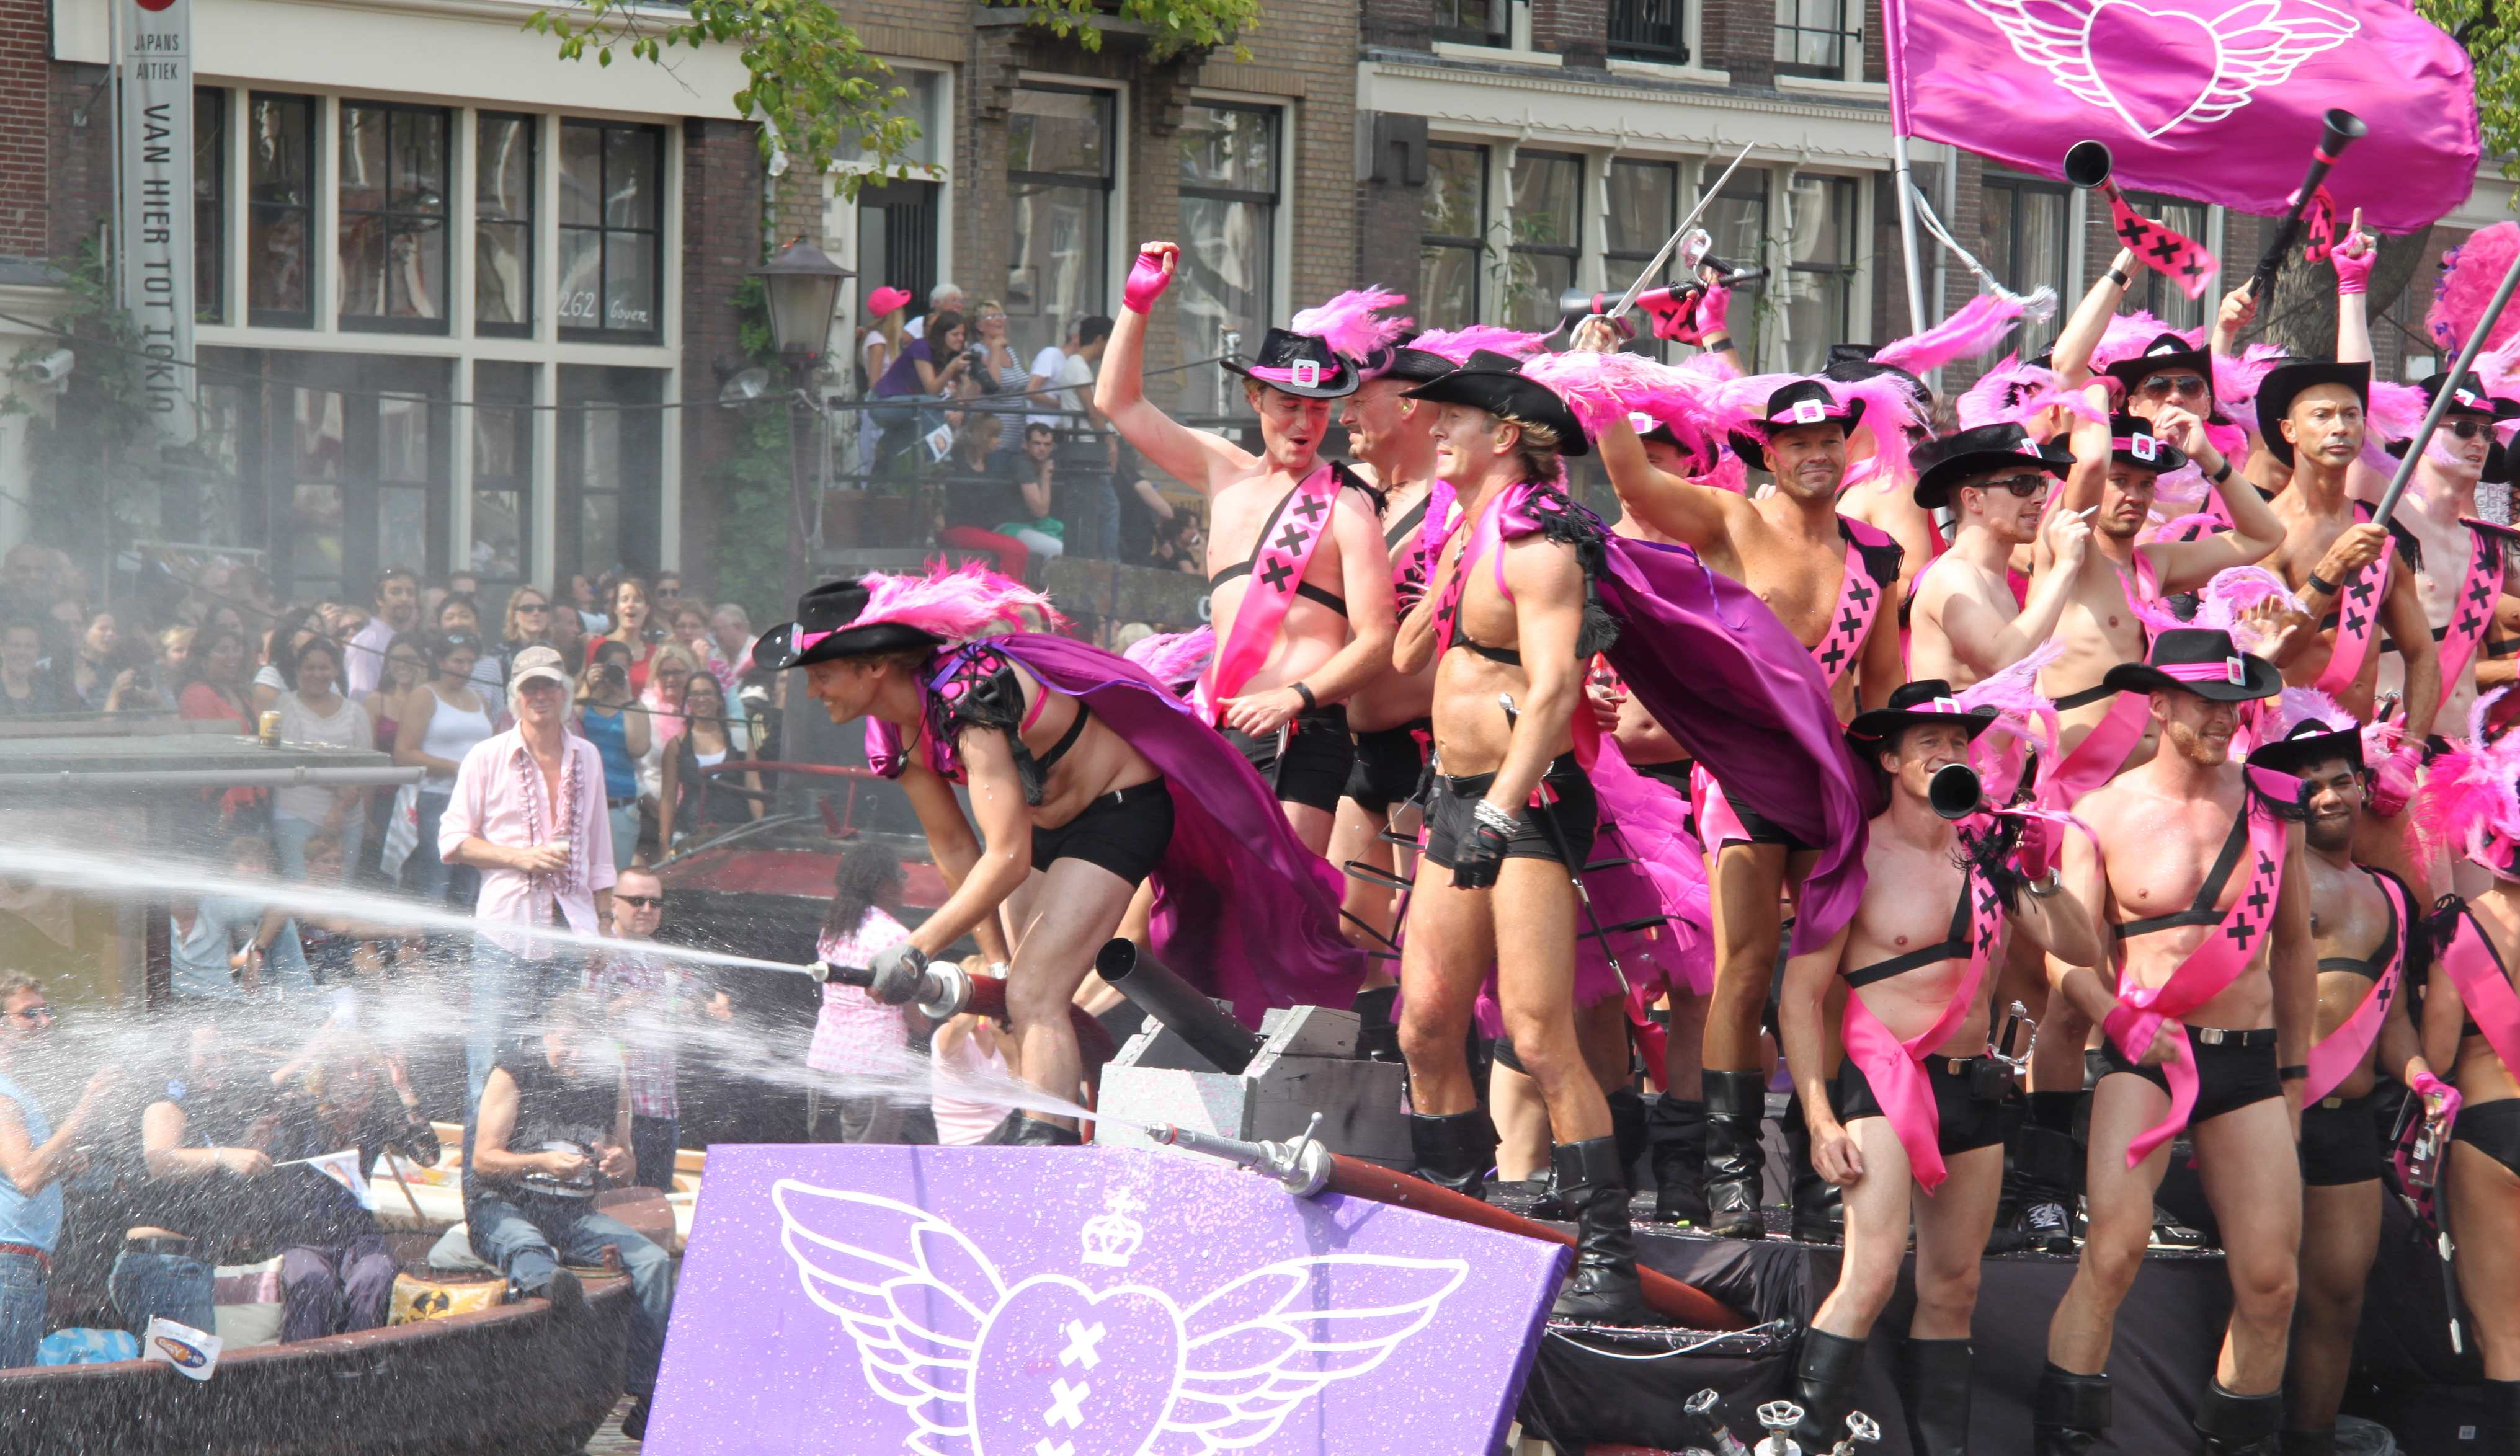 Gay lifestyle in amsterdam